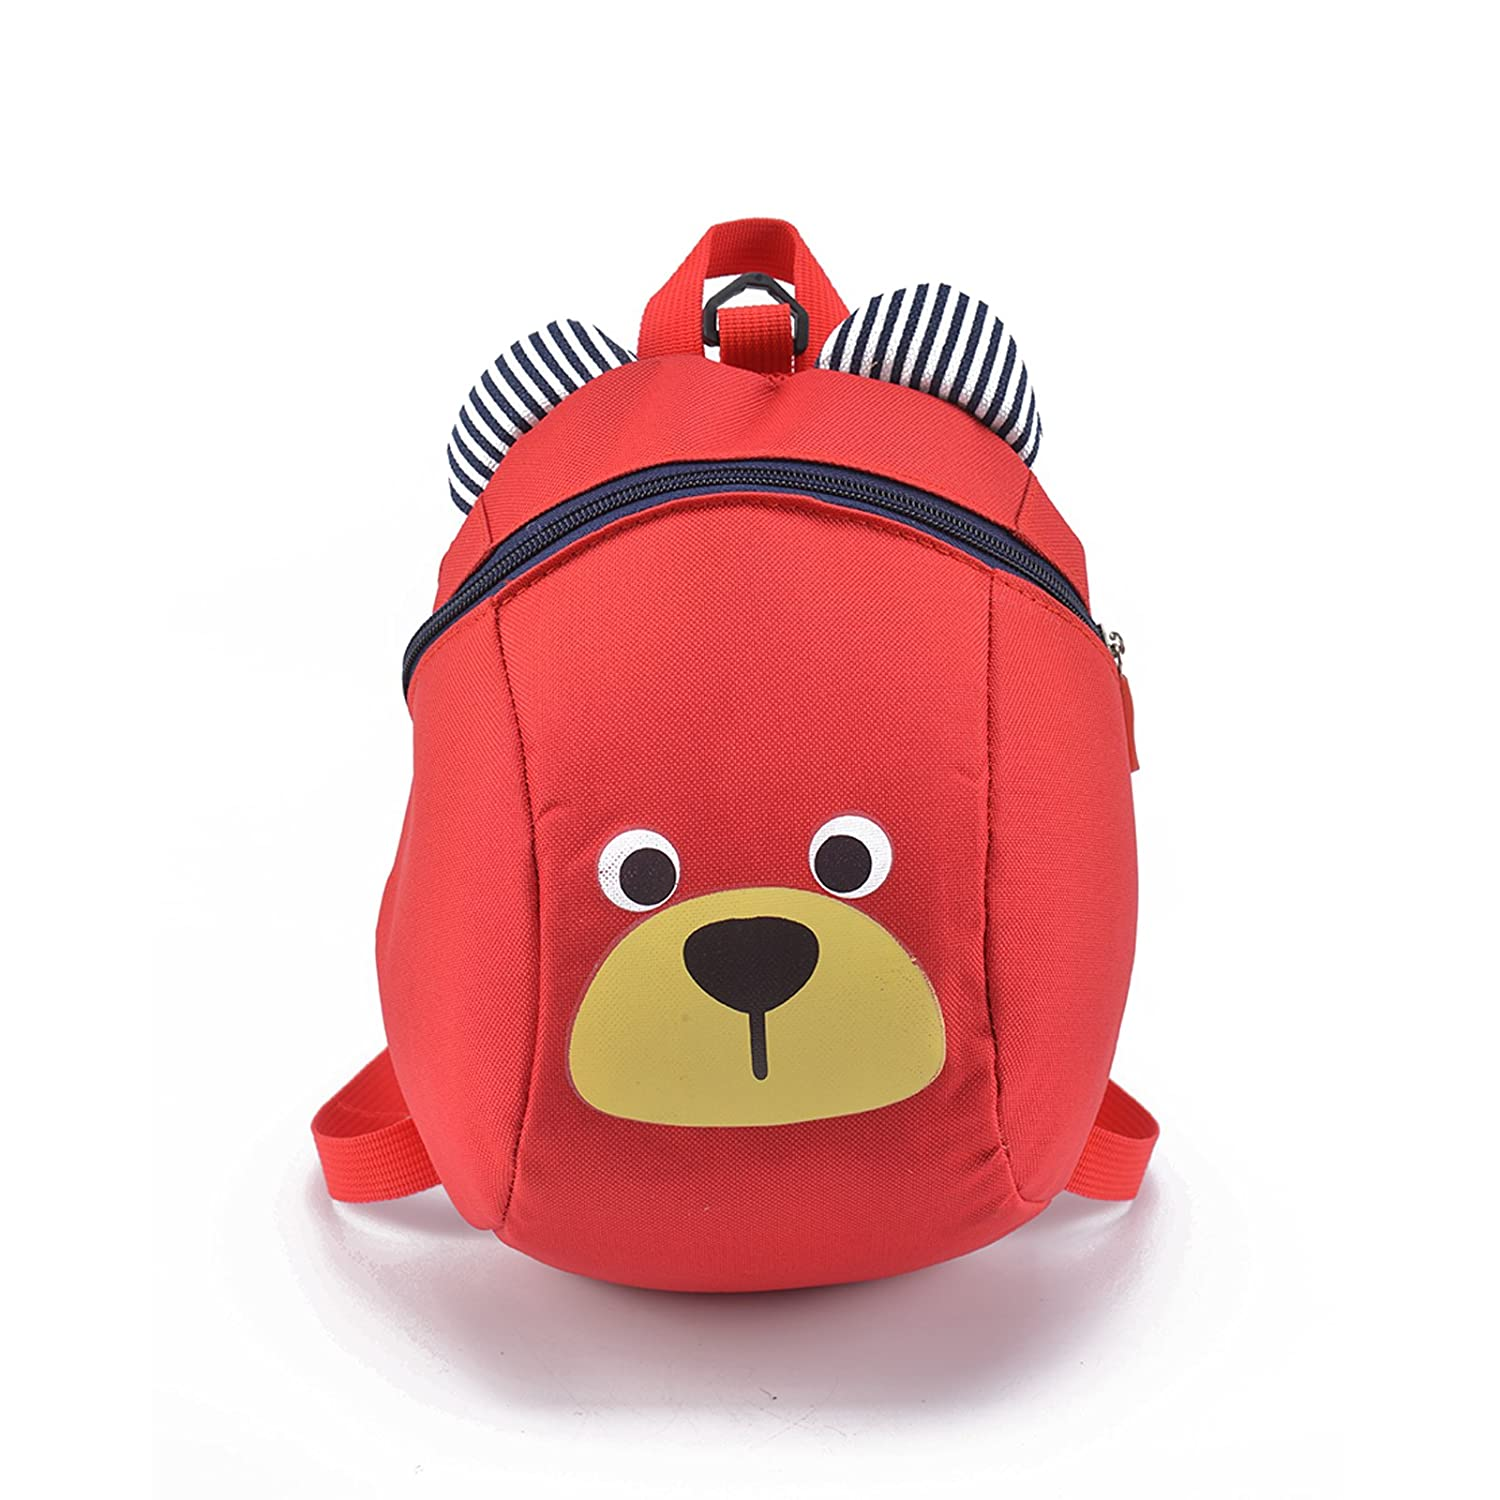 DHOUTDOORS Baby Toddler Safety Harness Backpack Kids Strap Shoulder Backpack Bag with Reins Leash Rucksack Harness Walkers Tether Belt Red oem